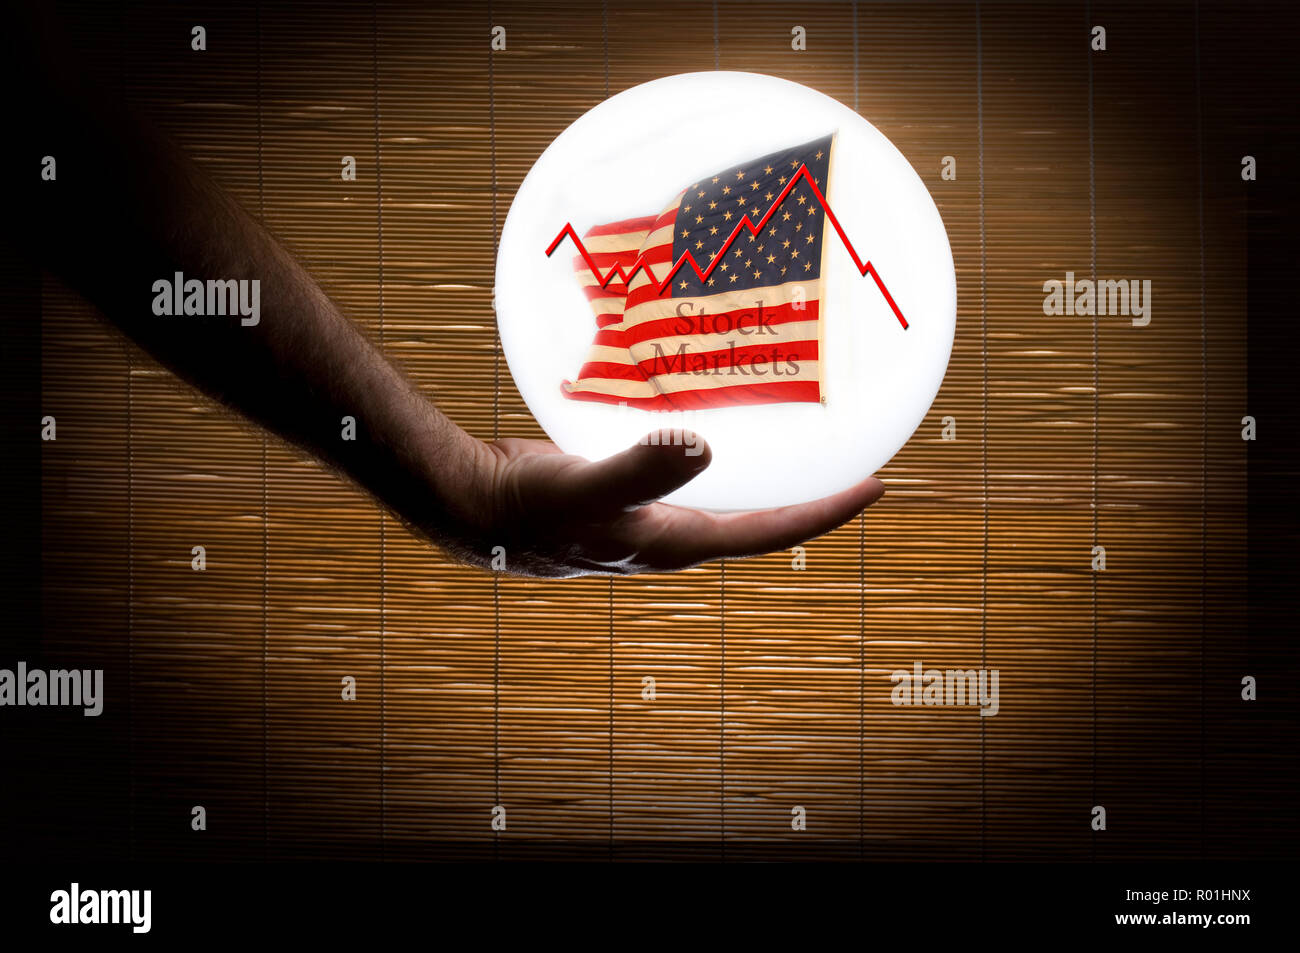 Human Hand Holding a Crystal Ball predicting the American Stock Market - Stock Image